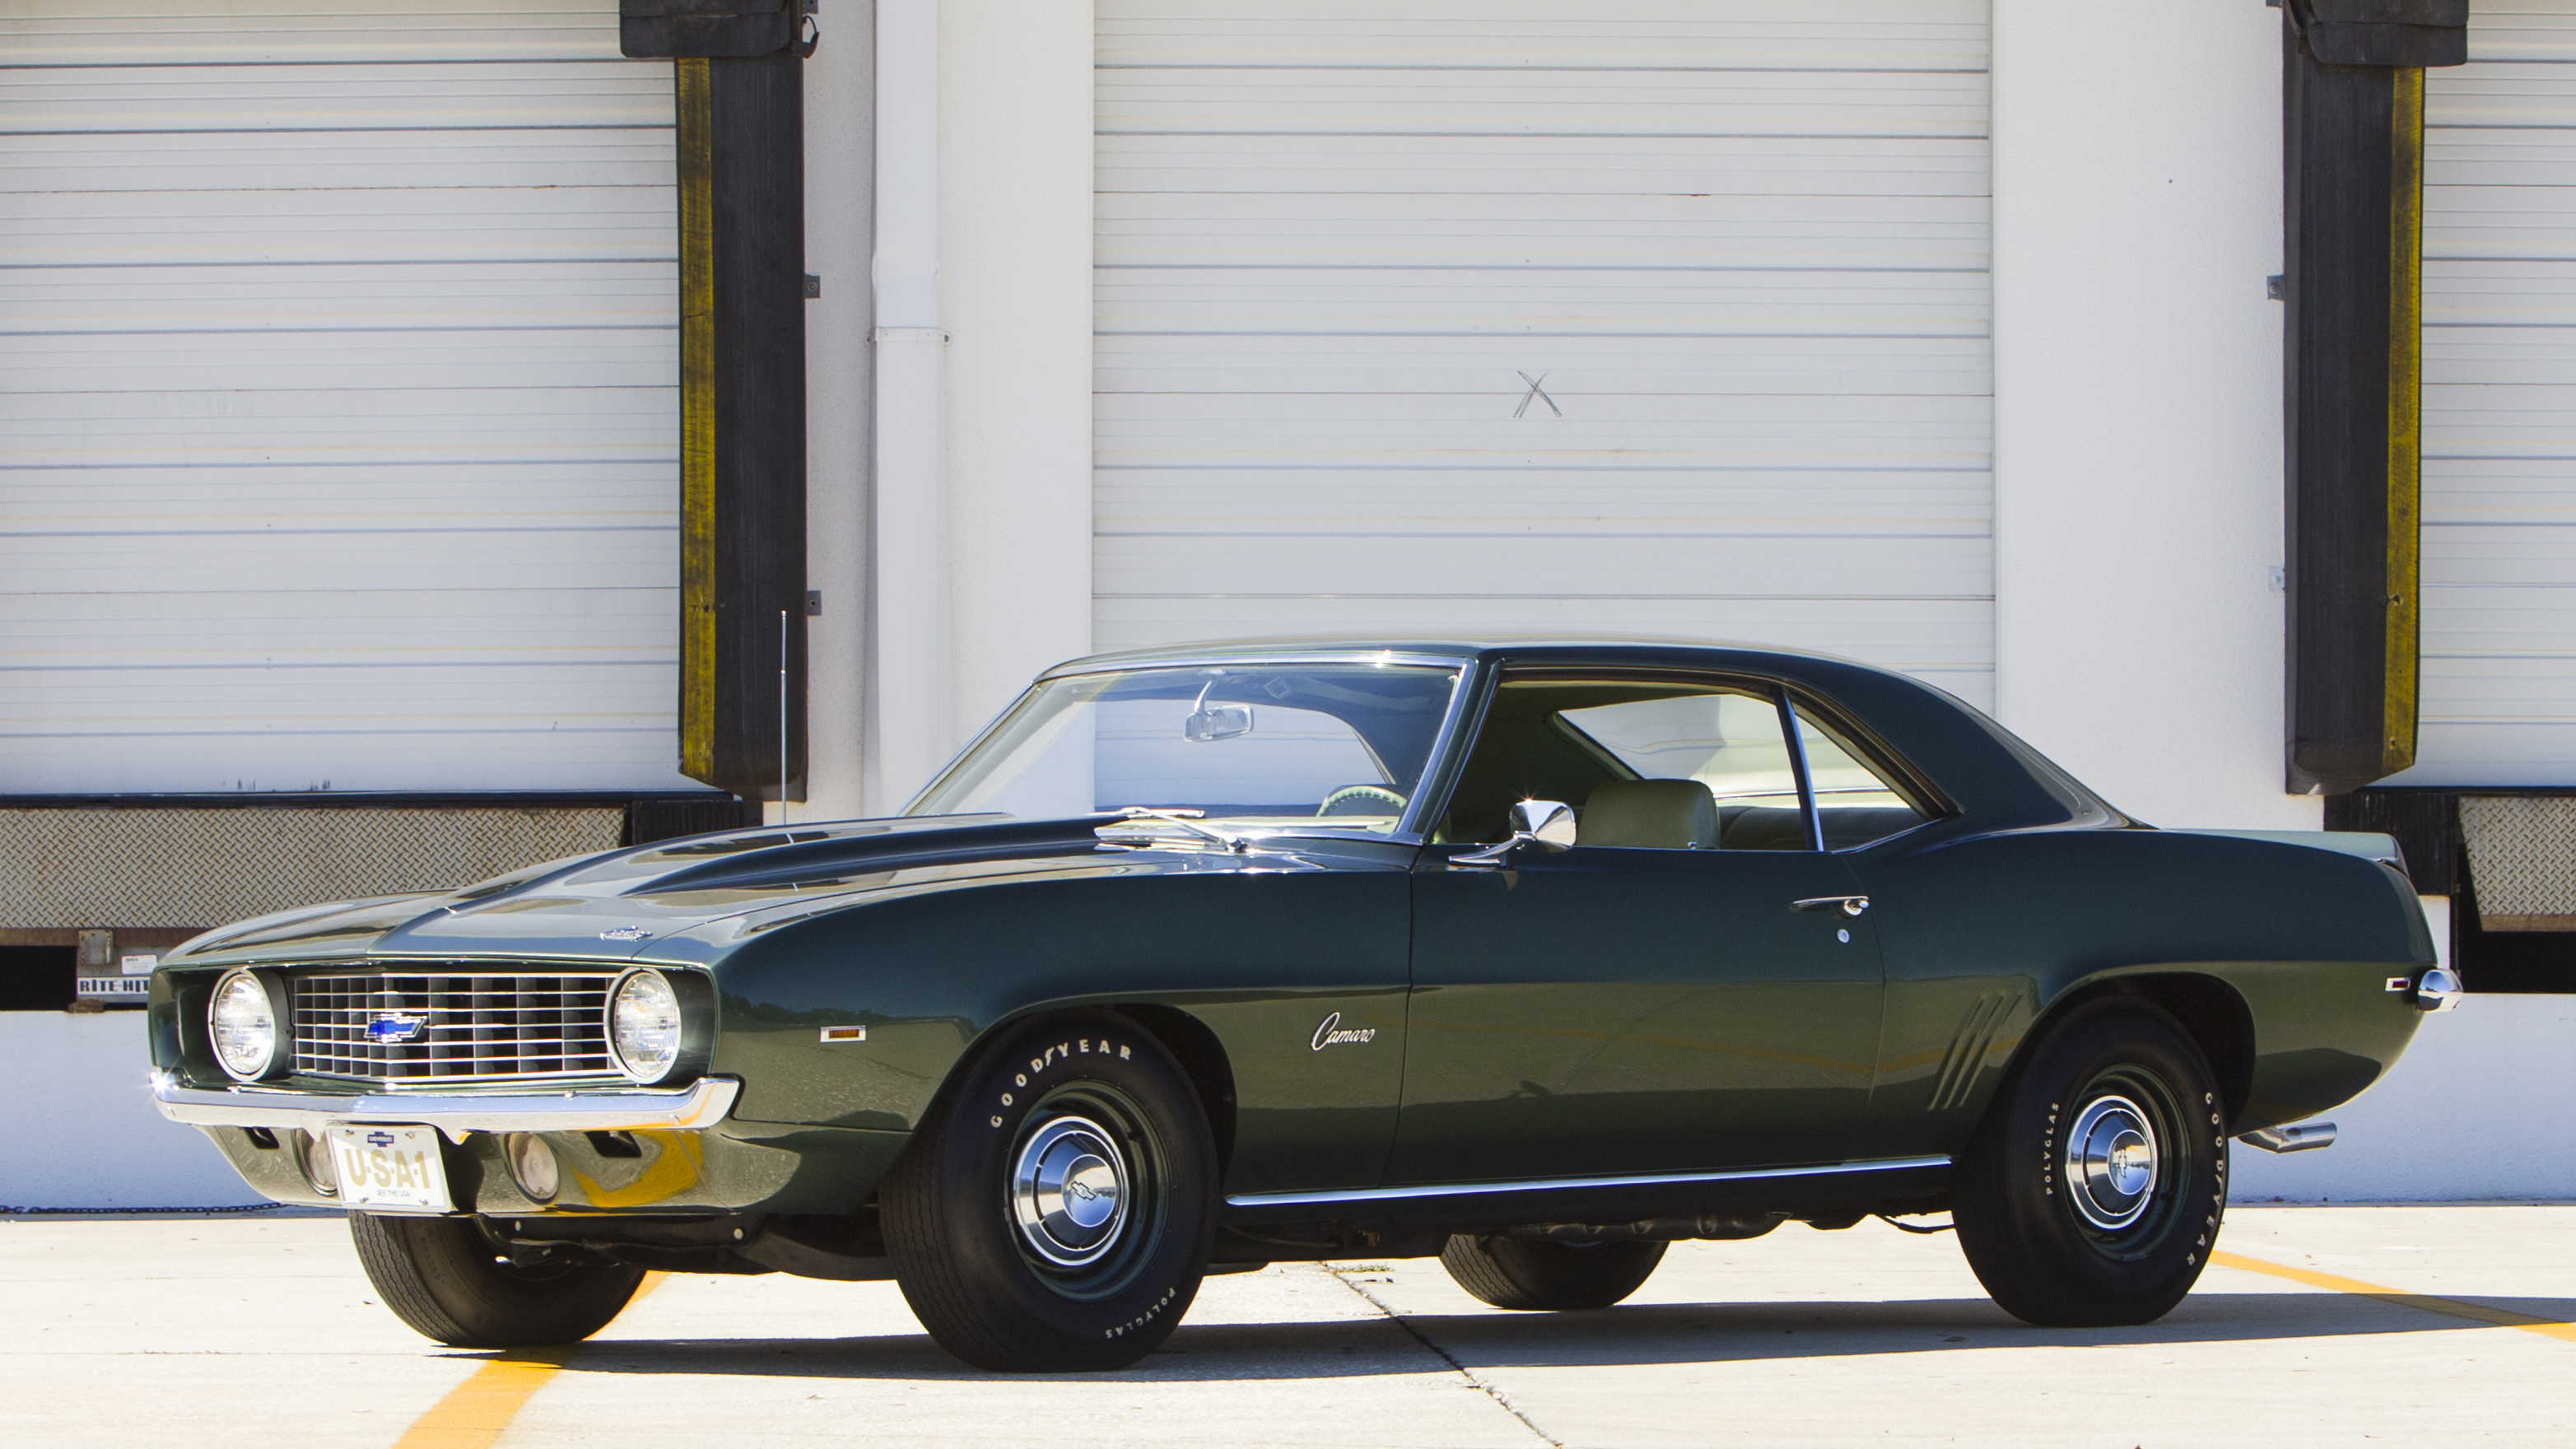 Would You Rather 1969 Ford Mustang Boss 429 Or 1969